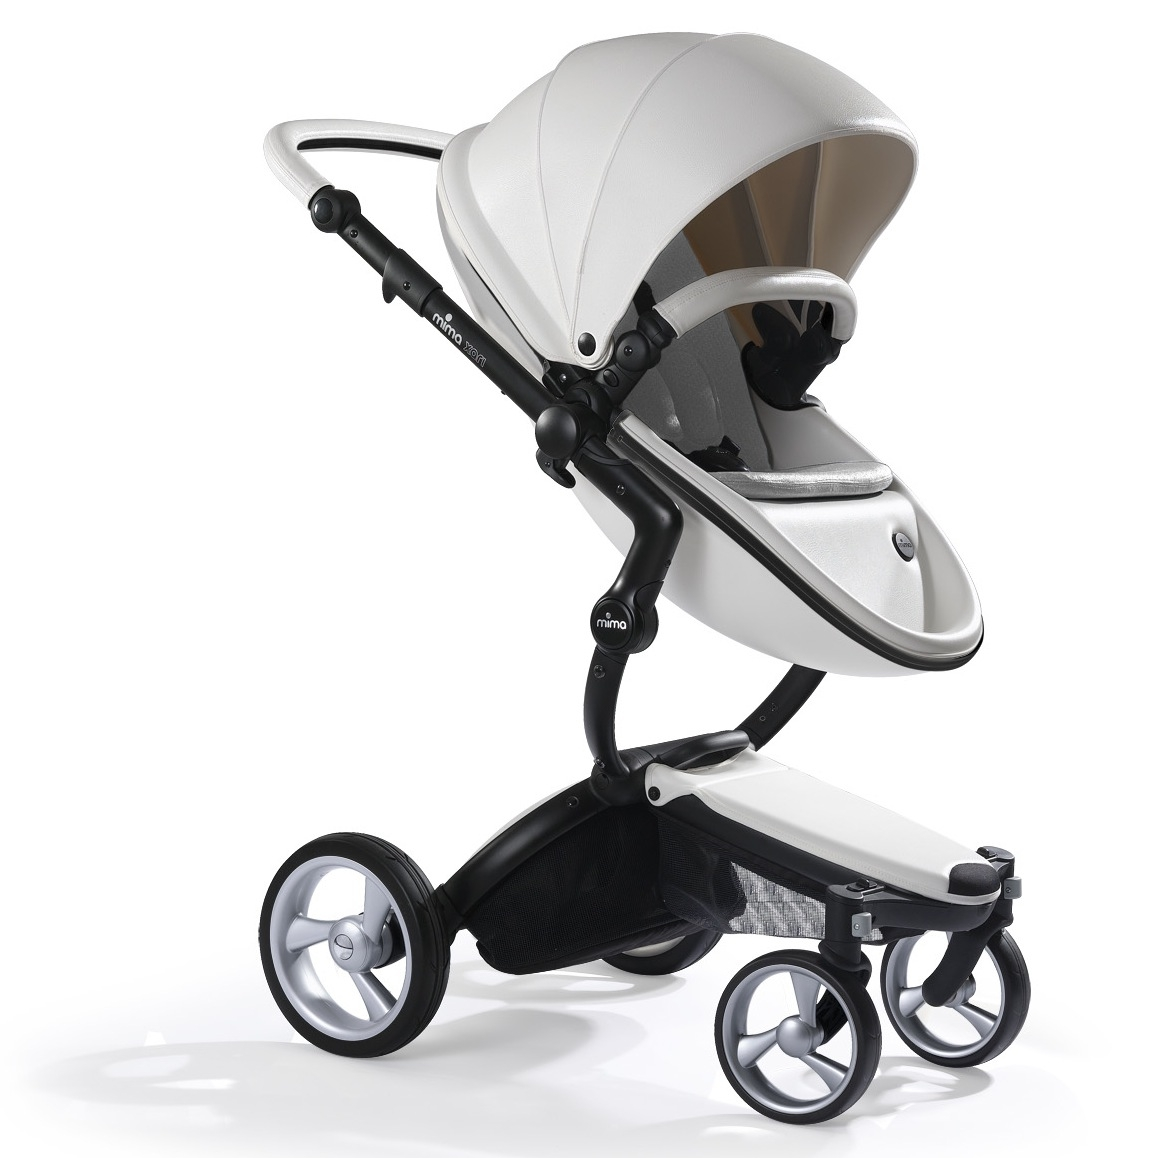 Mima Pram Winter Kit Mimakids Flair Collection The Best Pram For Design Parents